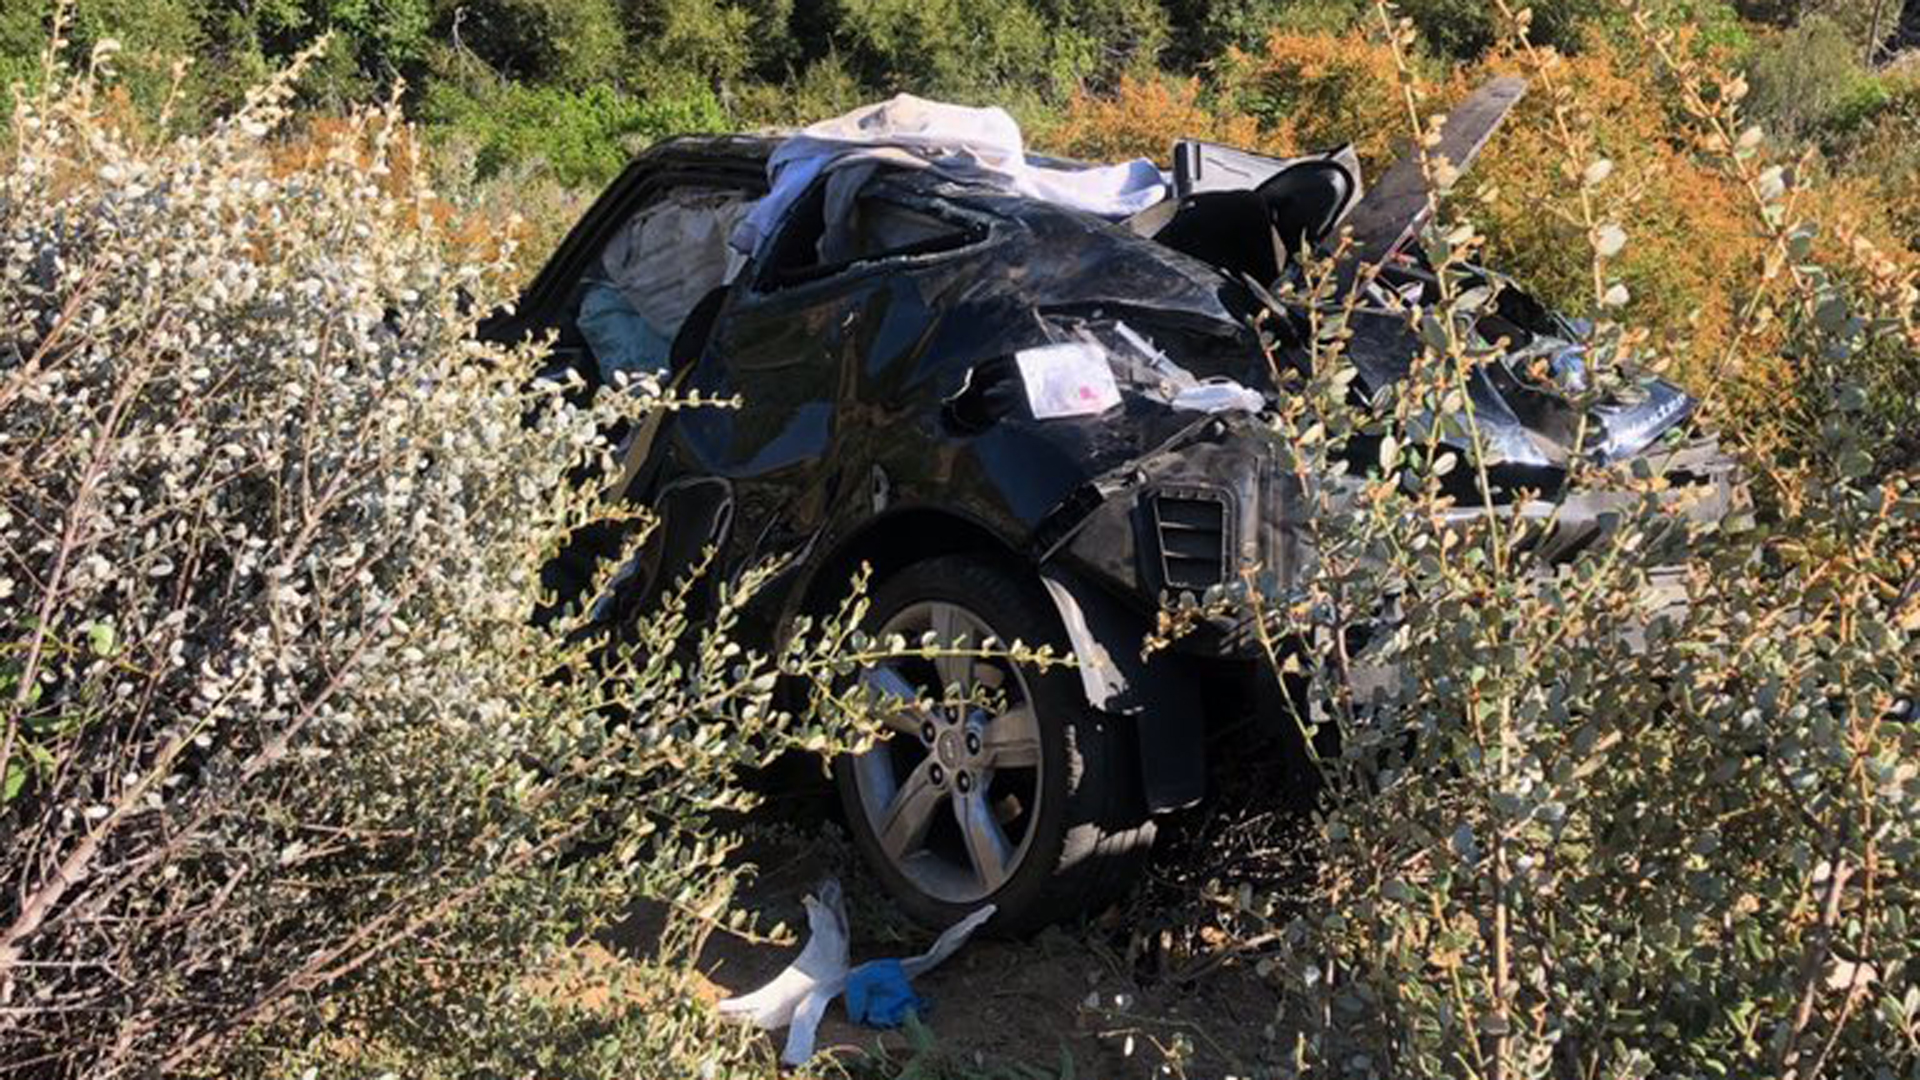 A man died when a car went over the side of a mountain road deep in the Angeles National Forest on July 26, 2019. (Credit: Los Angeles County Sheriff's Department)